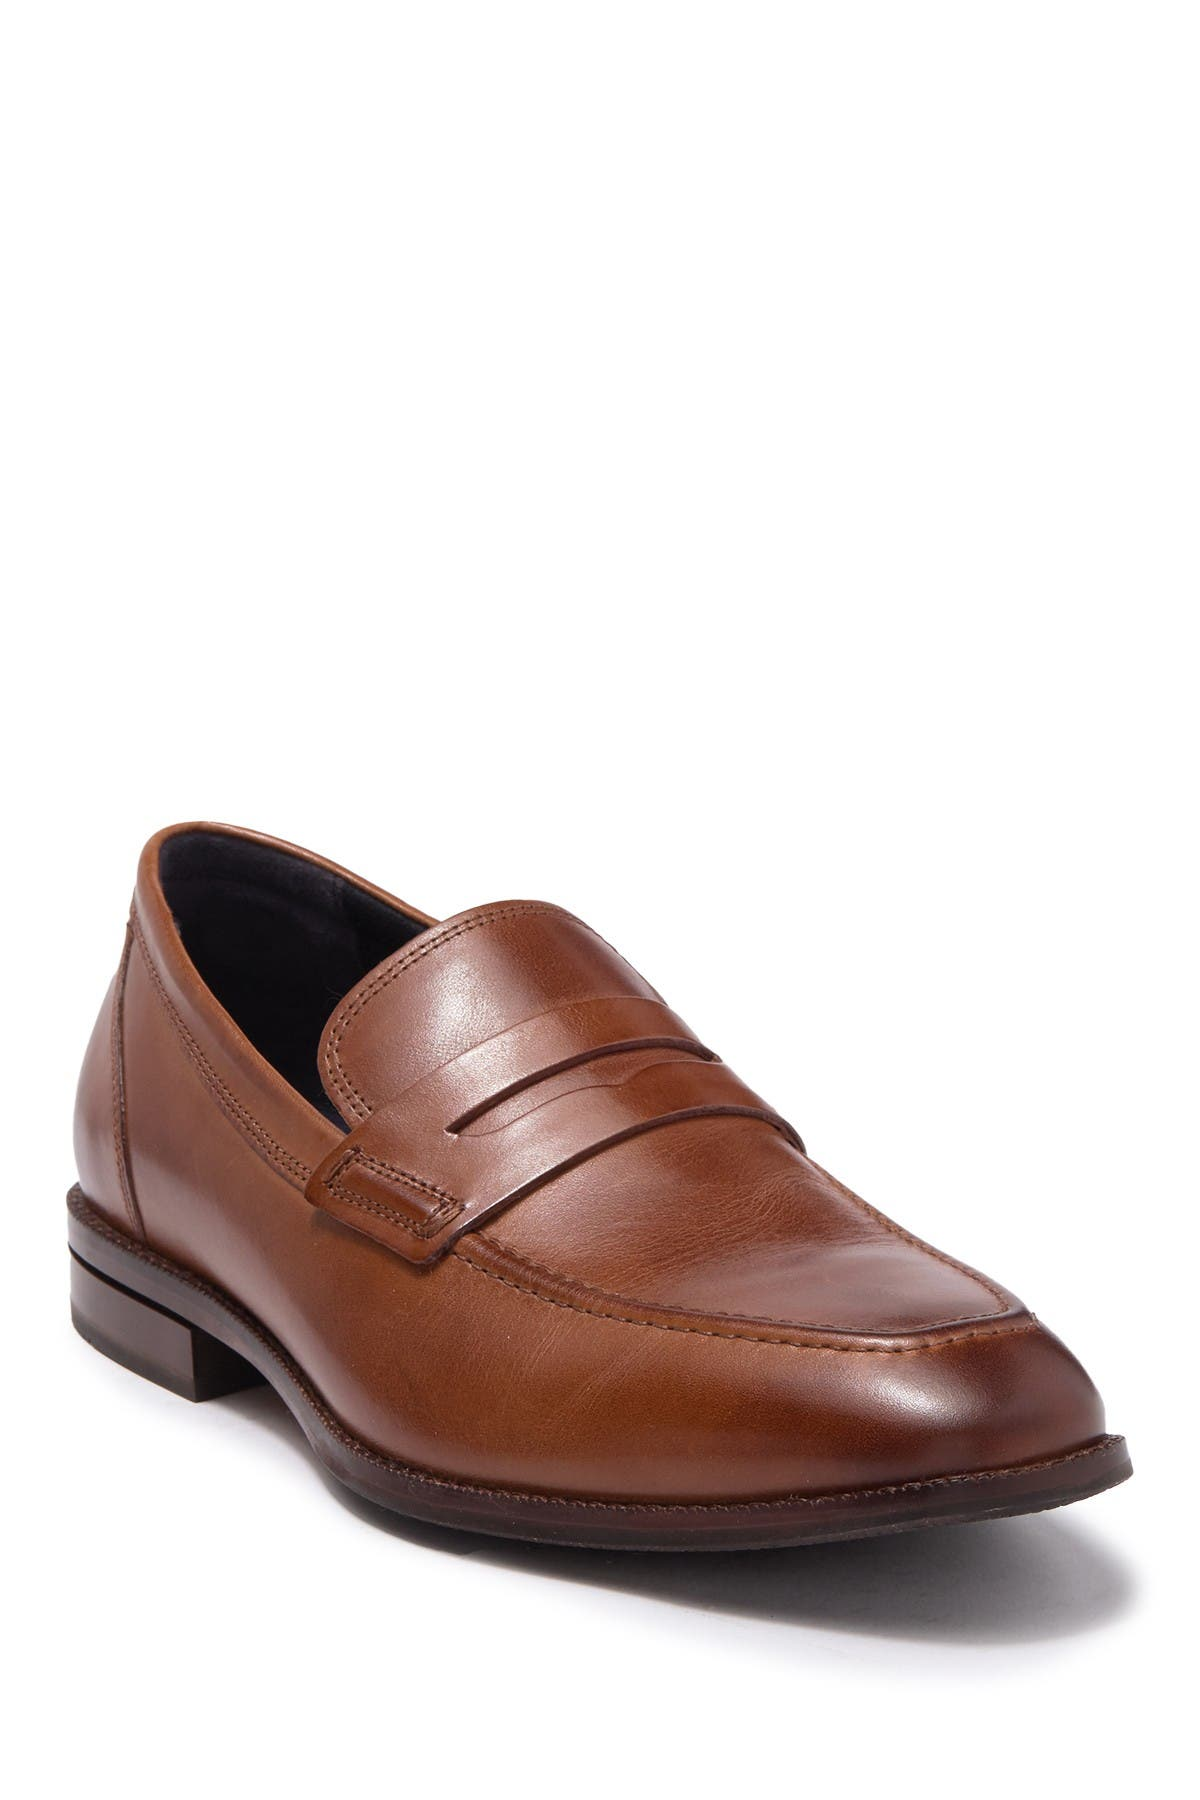 Image of Cole Haan Benton Penny Loafer - Wide Width Available